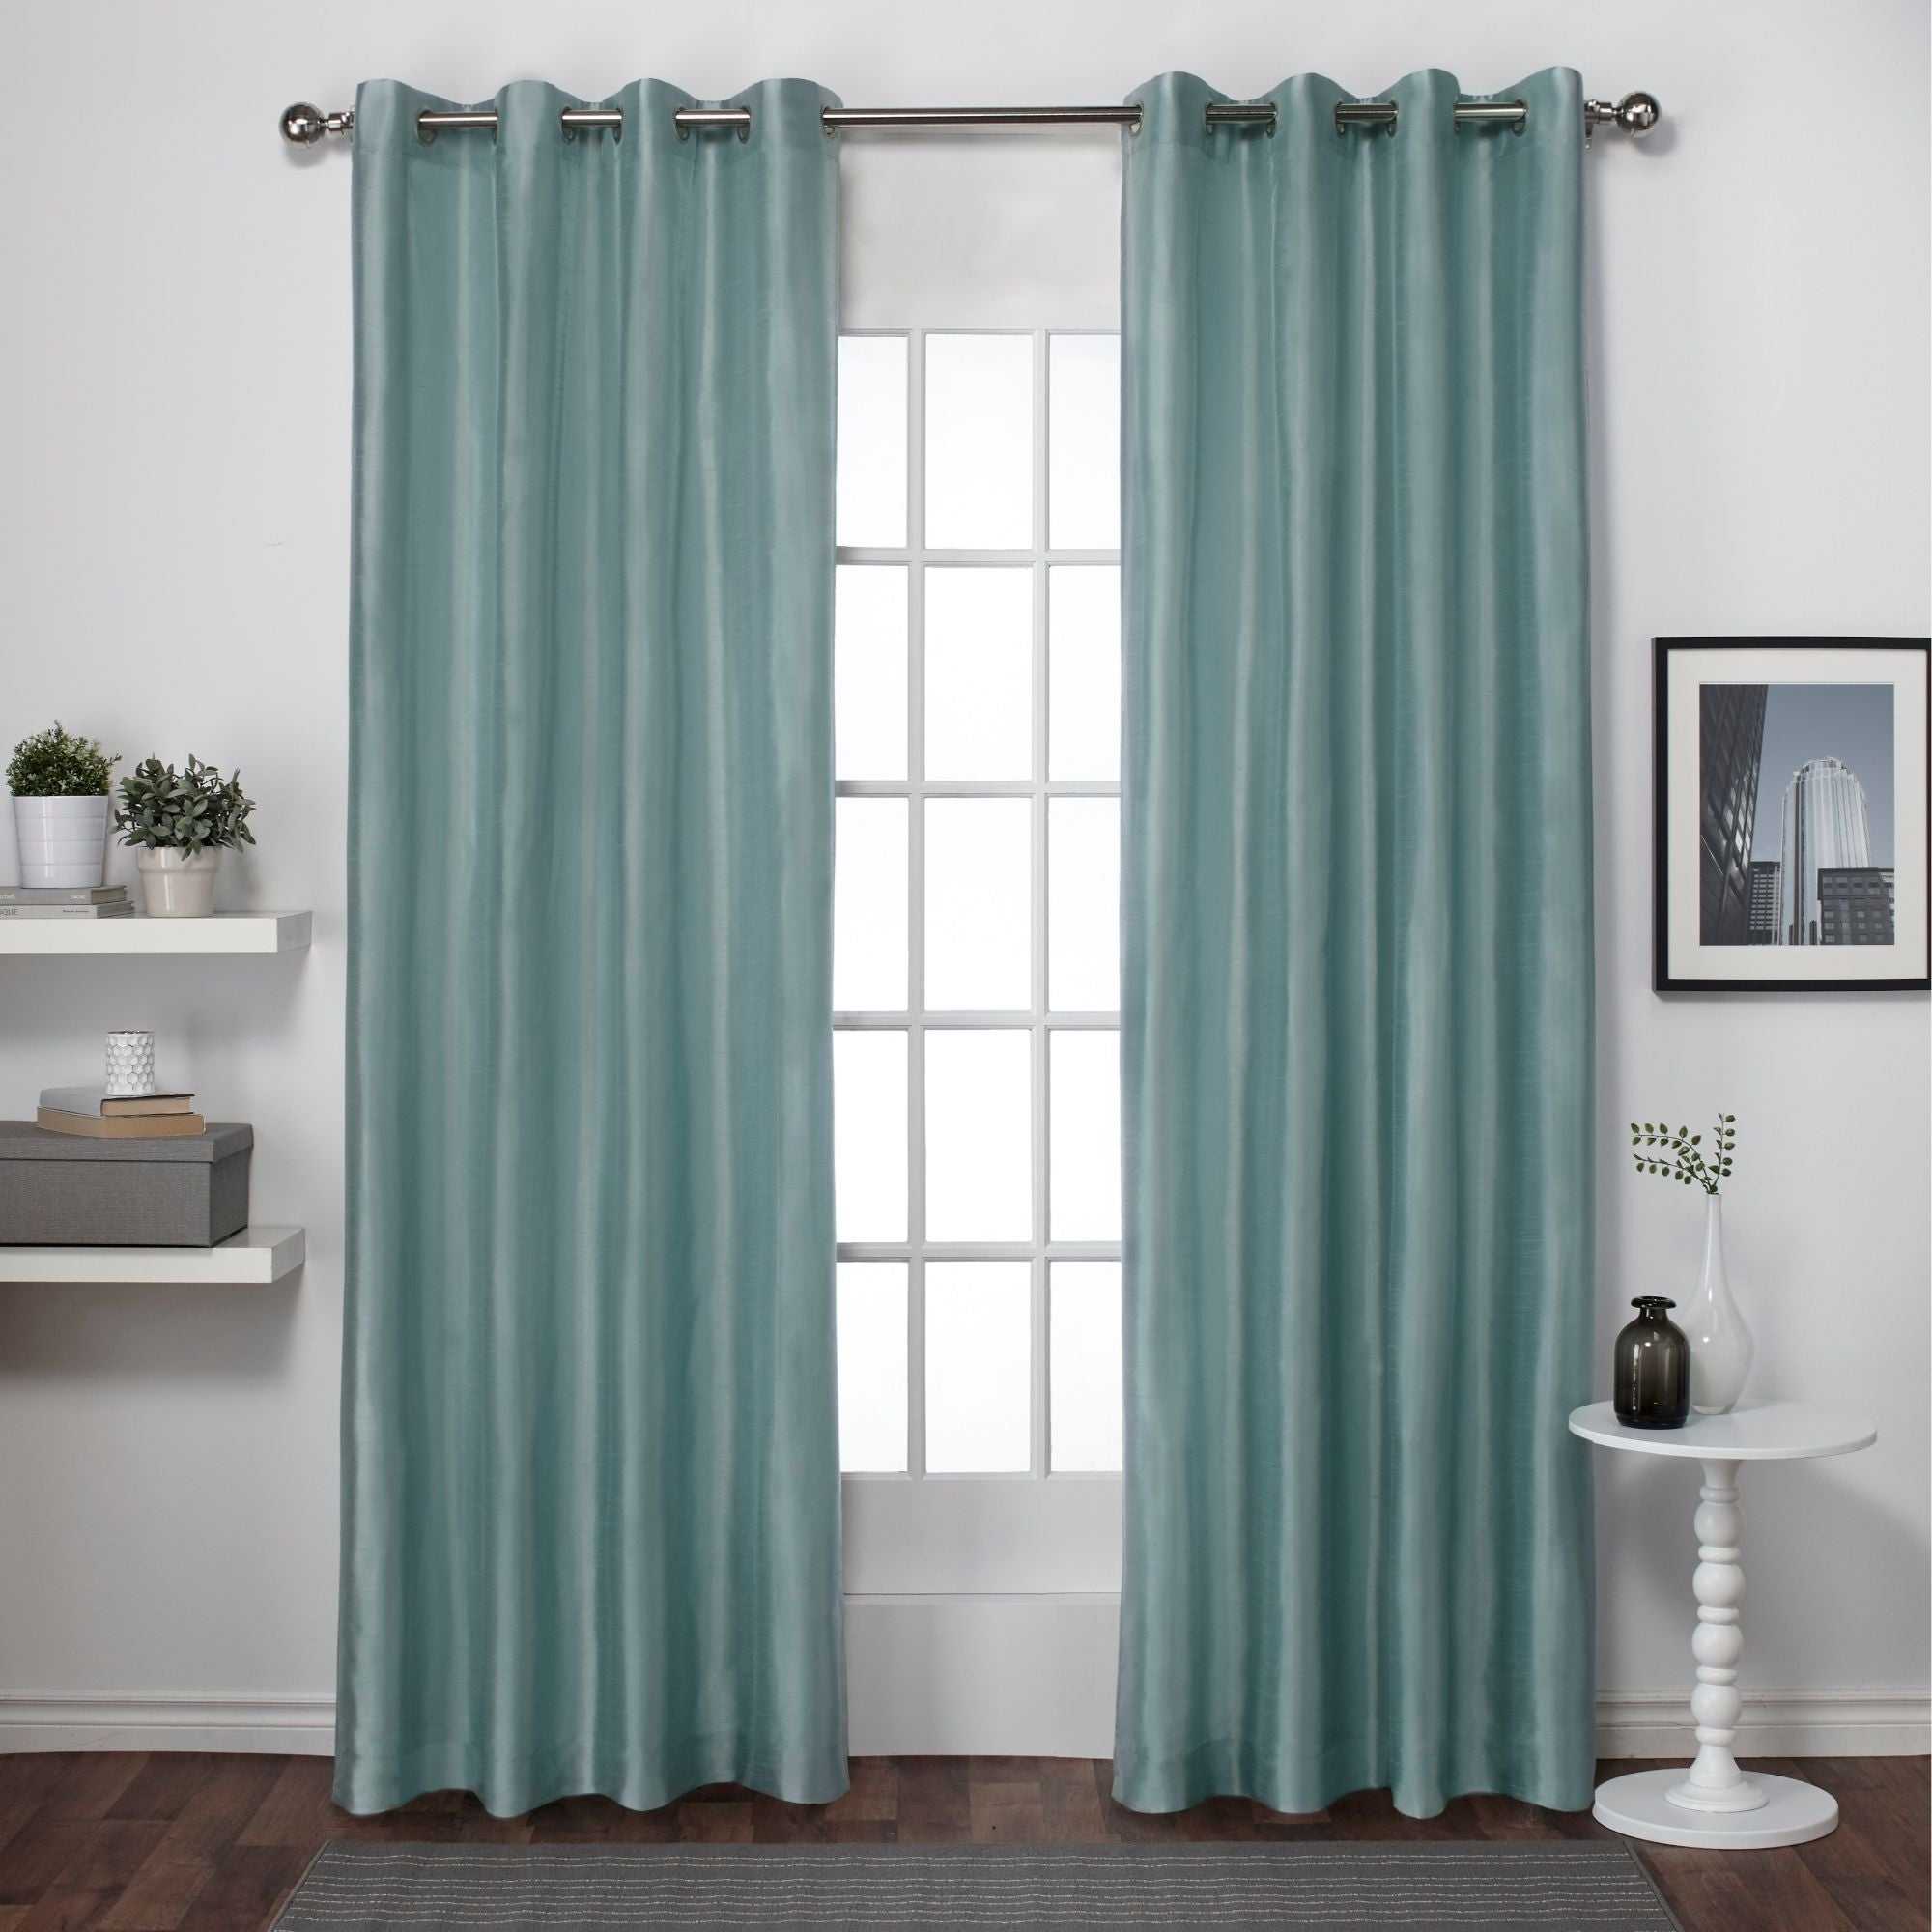 Copper Grove Fulgence Faux Silk Grommet Top Panel Curtains – N/ A Inside Copper Grove Fulgence Faux Silk Grommet Top Panel Curtains (View 2 of 20)